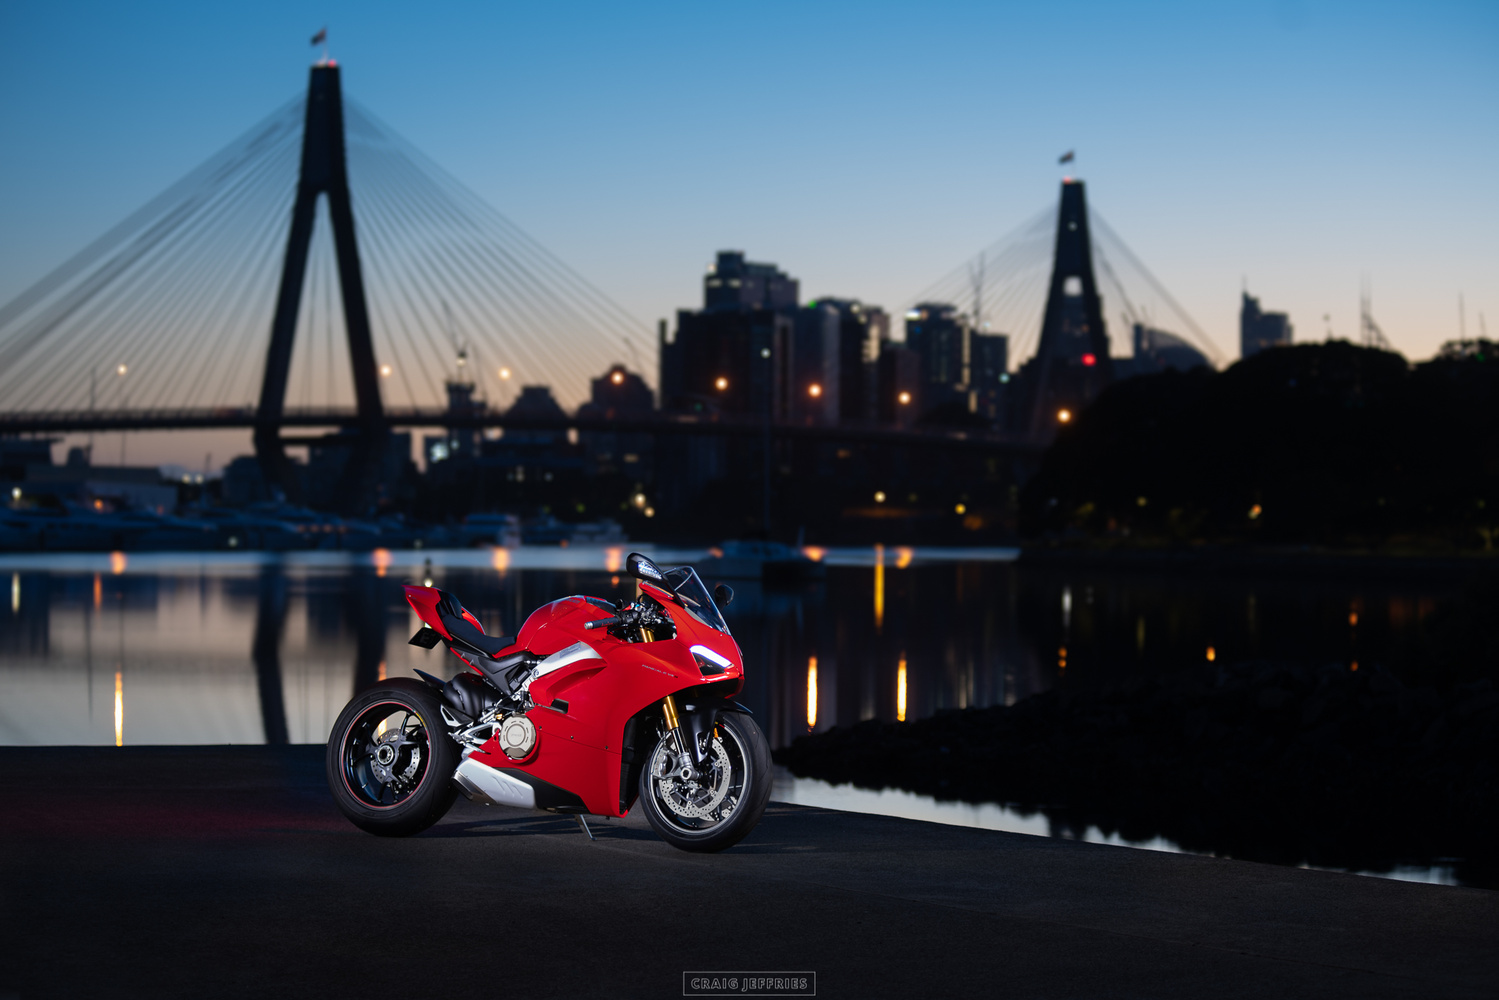 Ducati Panigale V4 at the dawn by Craig Jeffries